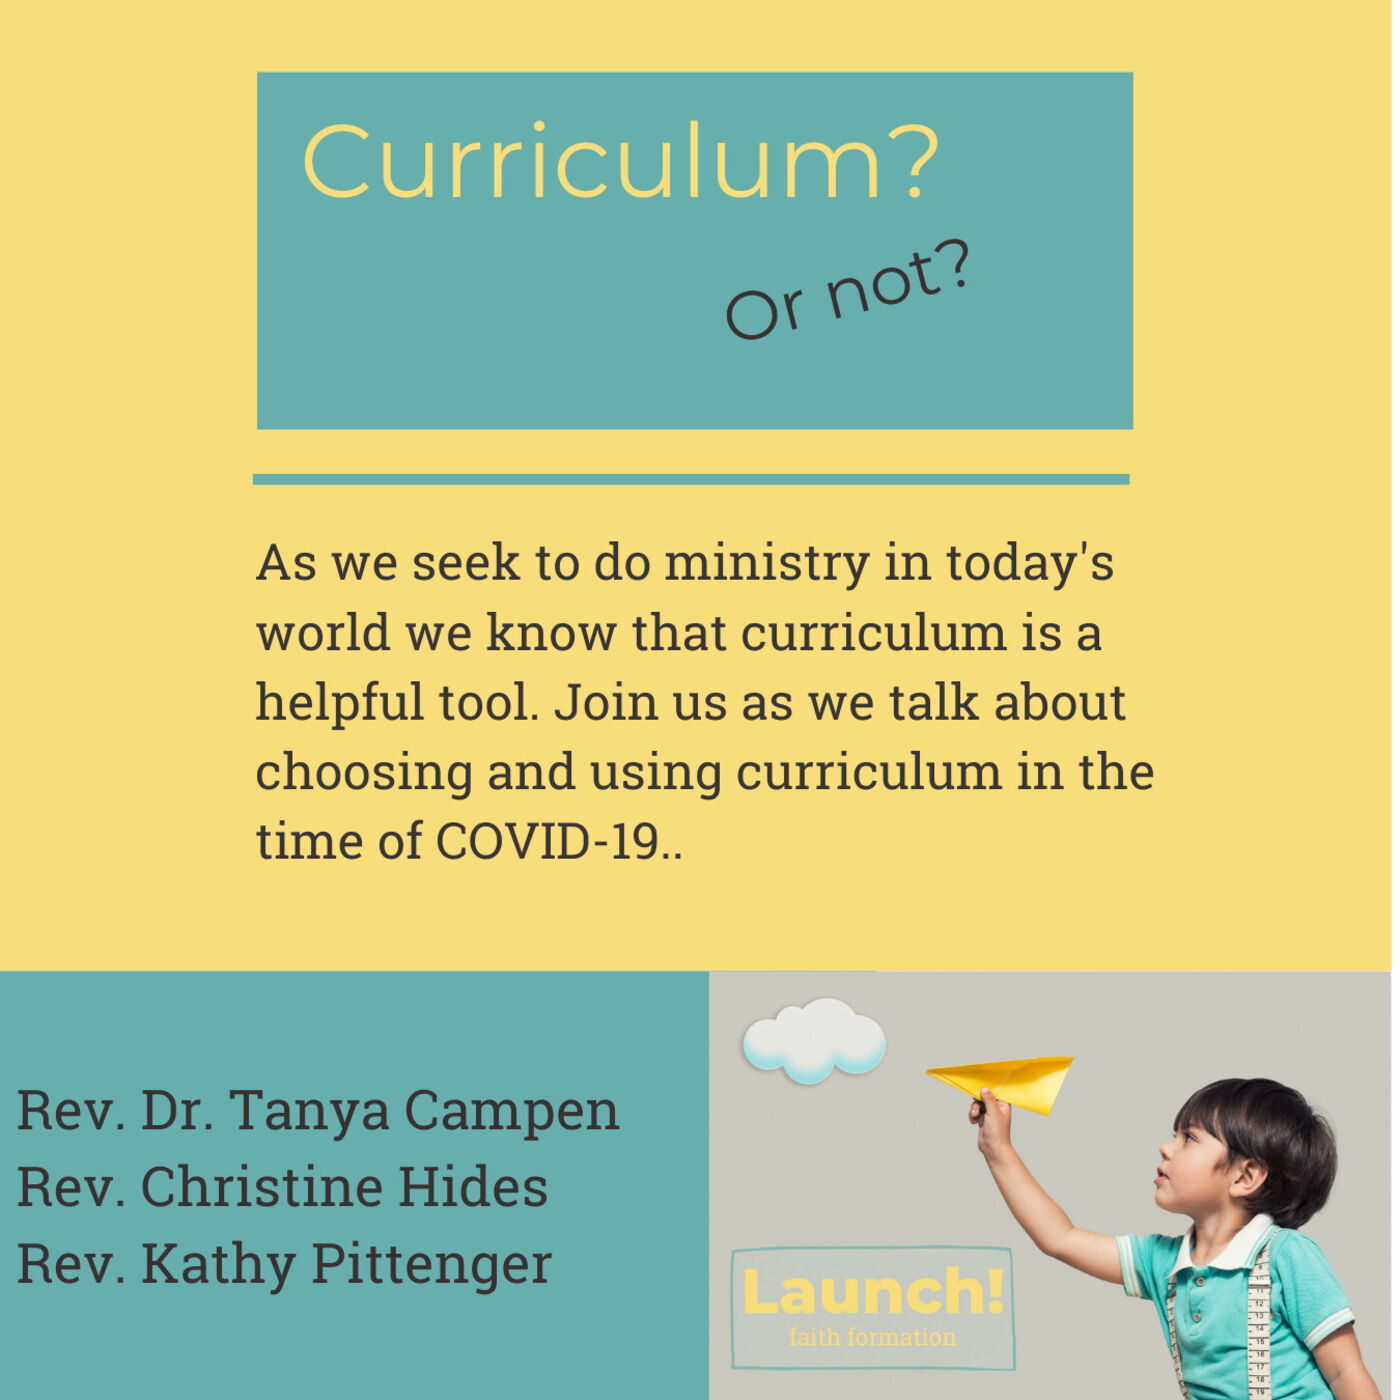 Curriculum, or not?